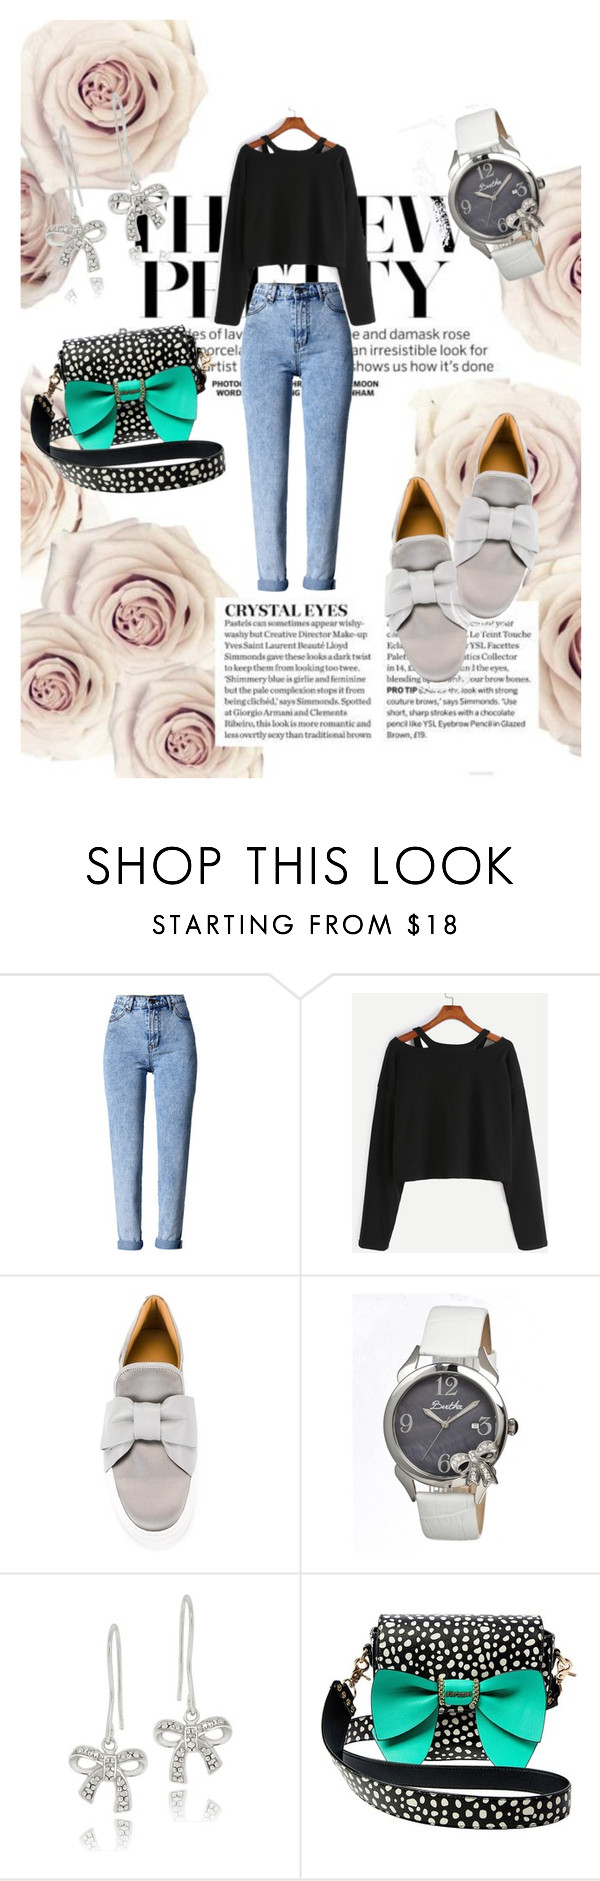 """""""cute bows"""" by lagricape ❤ liked on Polyvore featuring WithChic, BUSCEMI, Bertha, DB Designs and Betsey Johnson"""